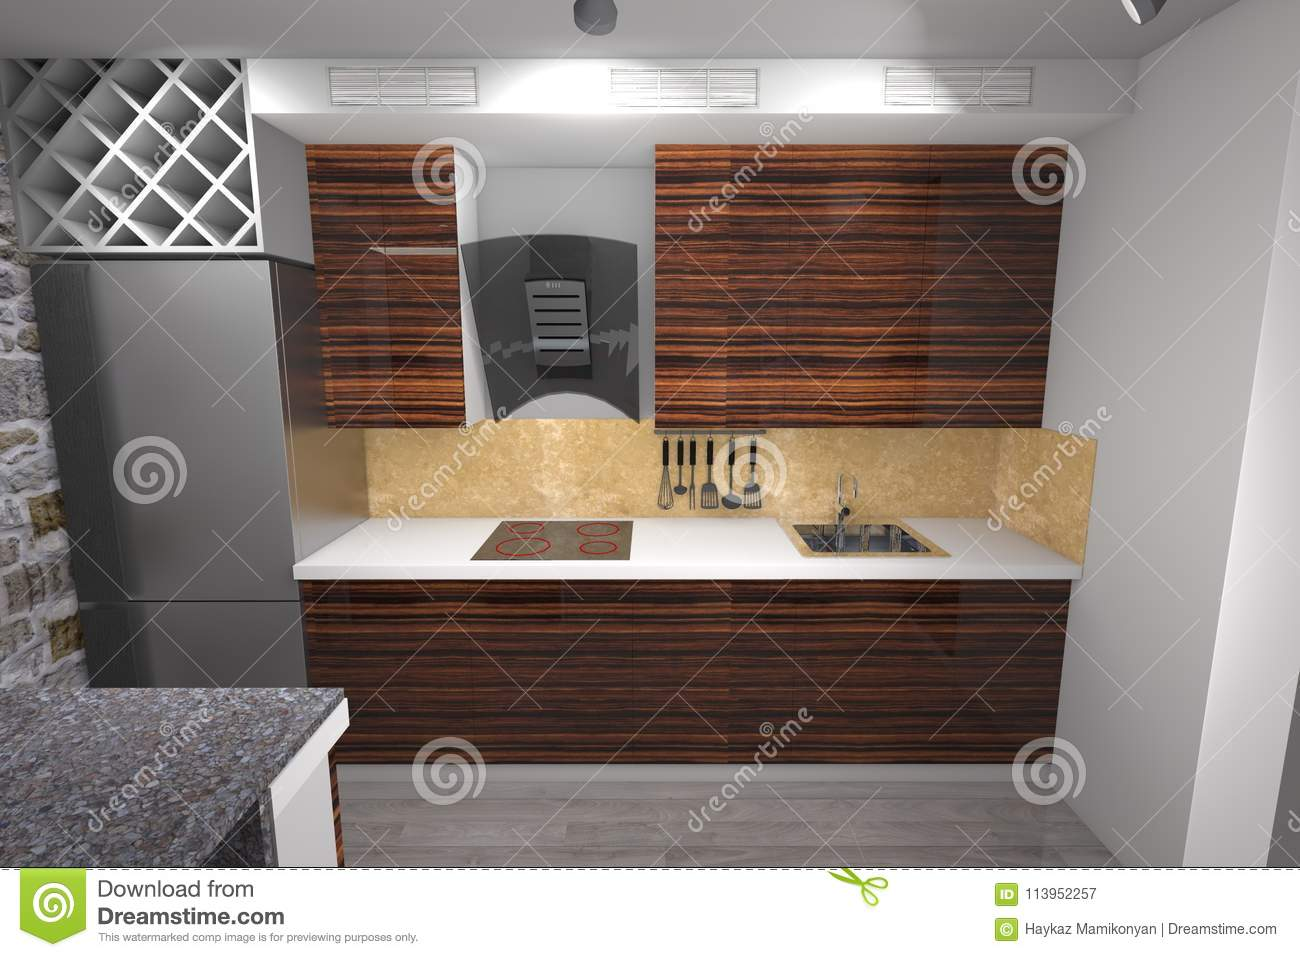 3d Kitchen Design Stock Illustration Illustration Of Plan 113952257